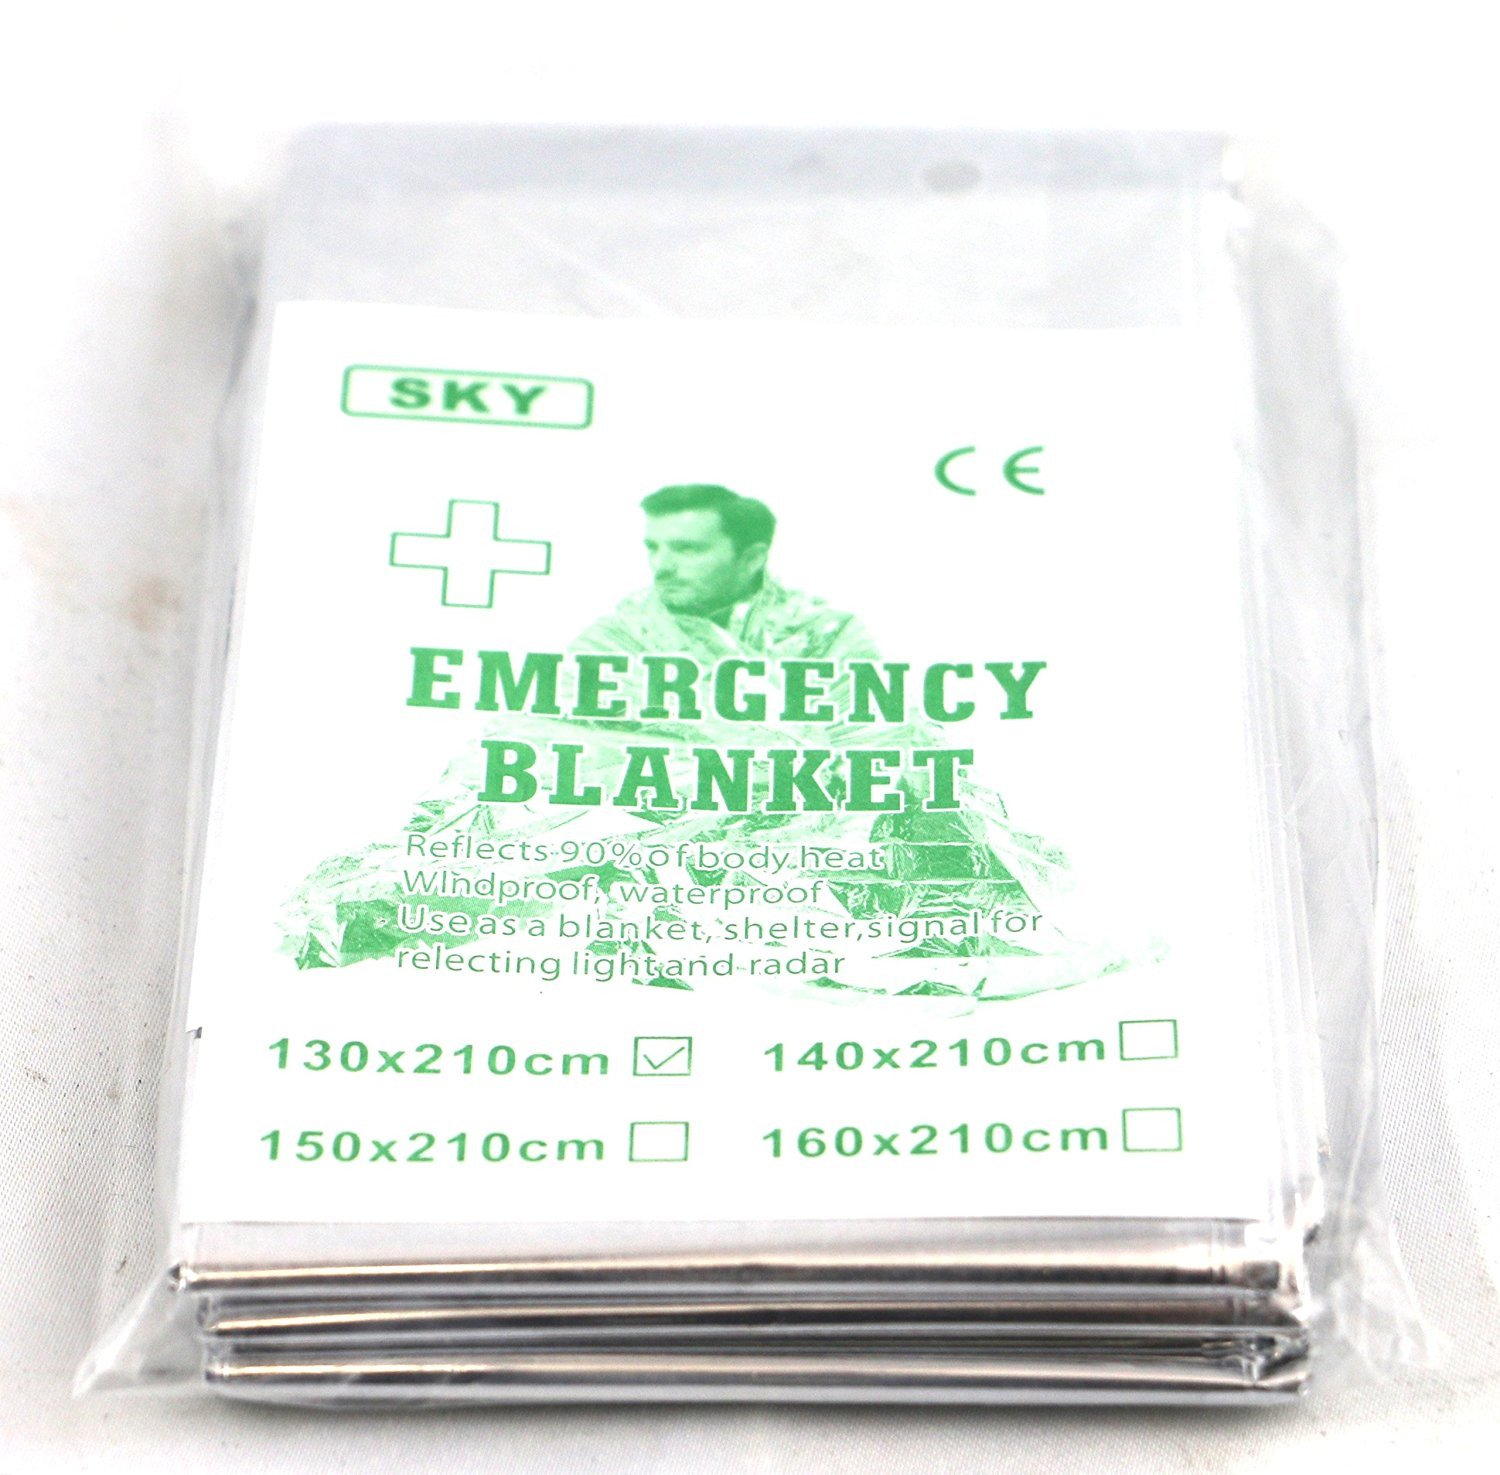 ACME Machine Emergency Blanket by ACME Machine